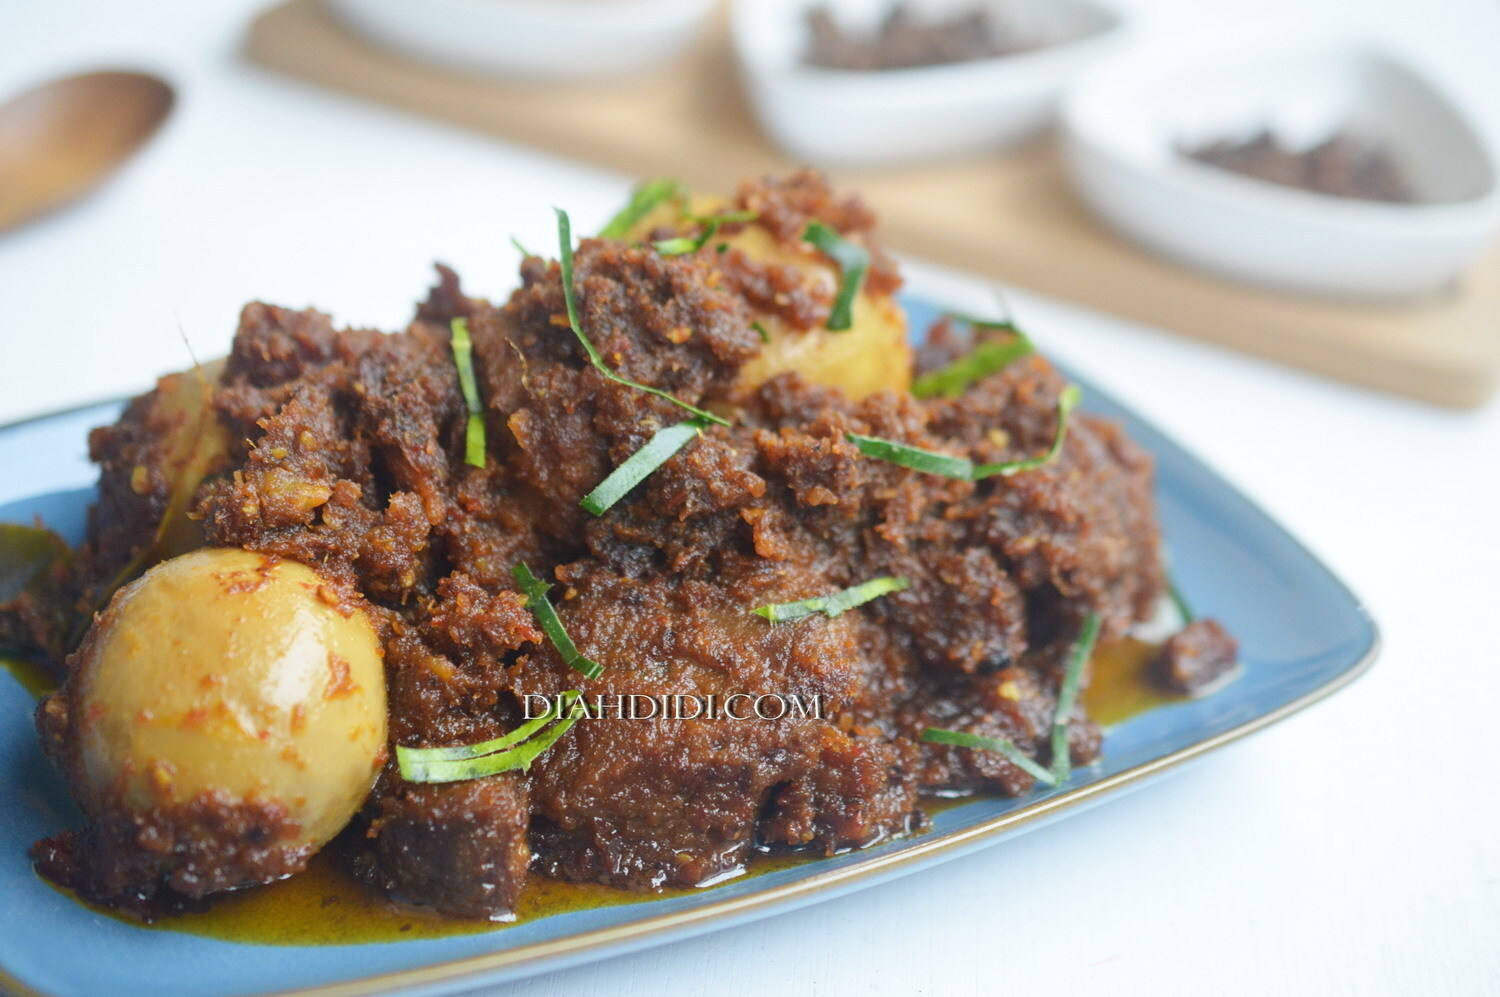 Rendang Ala Diah Didi's Kitchen